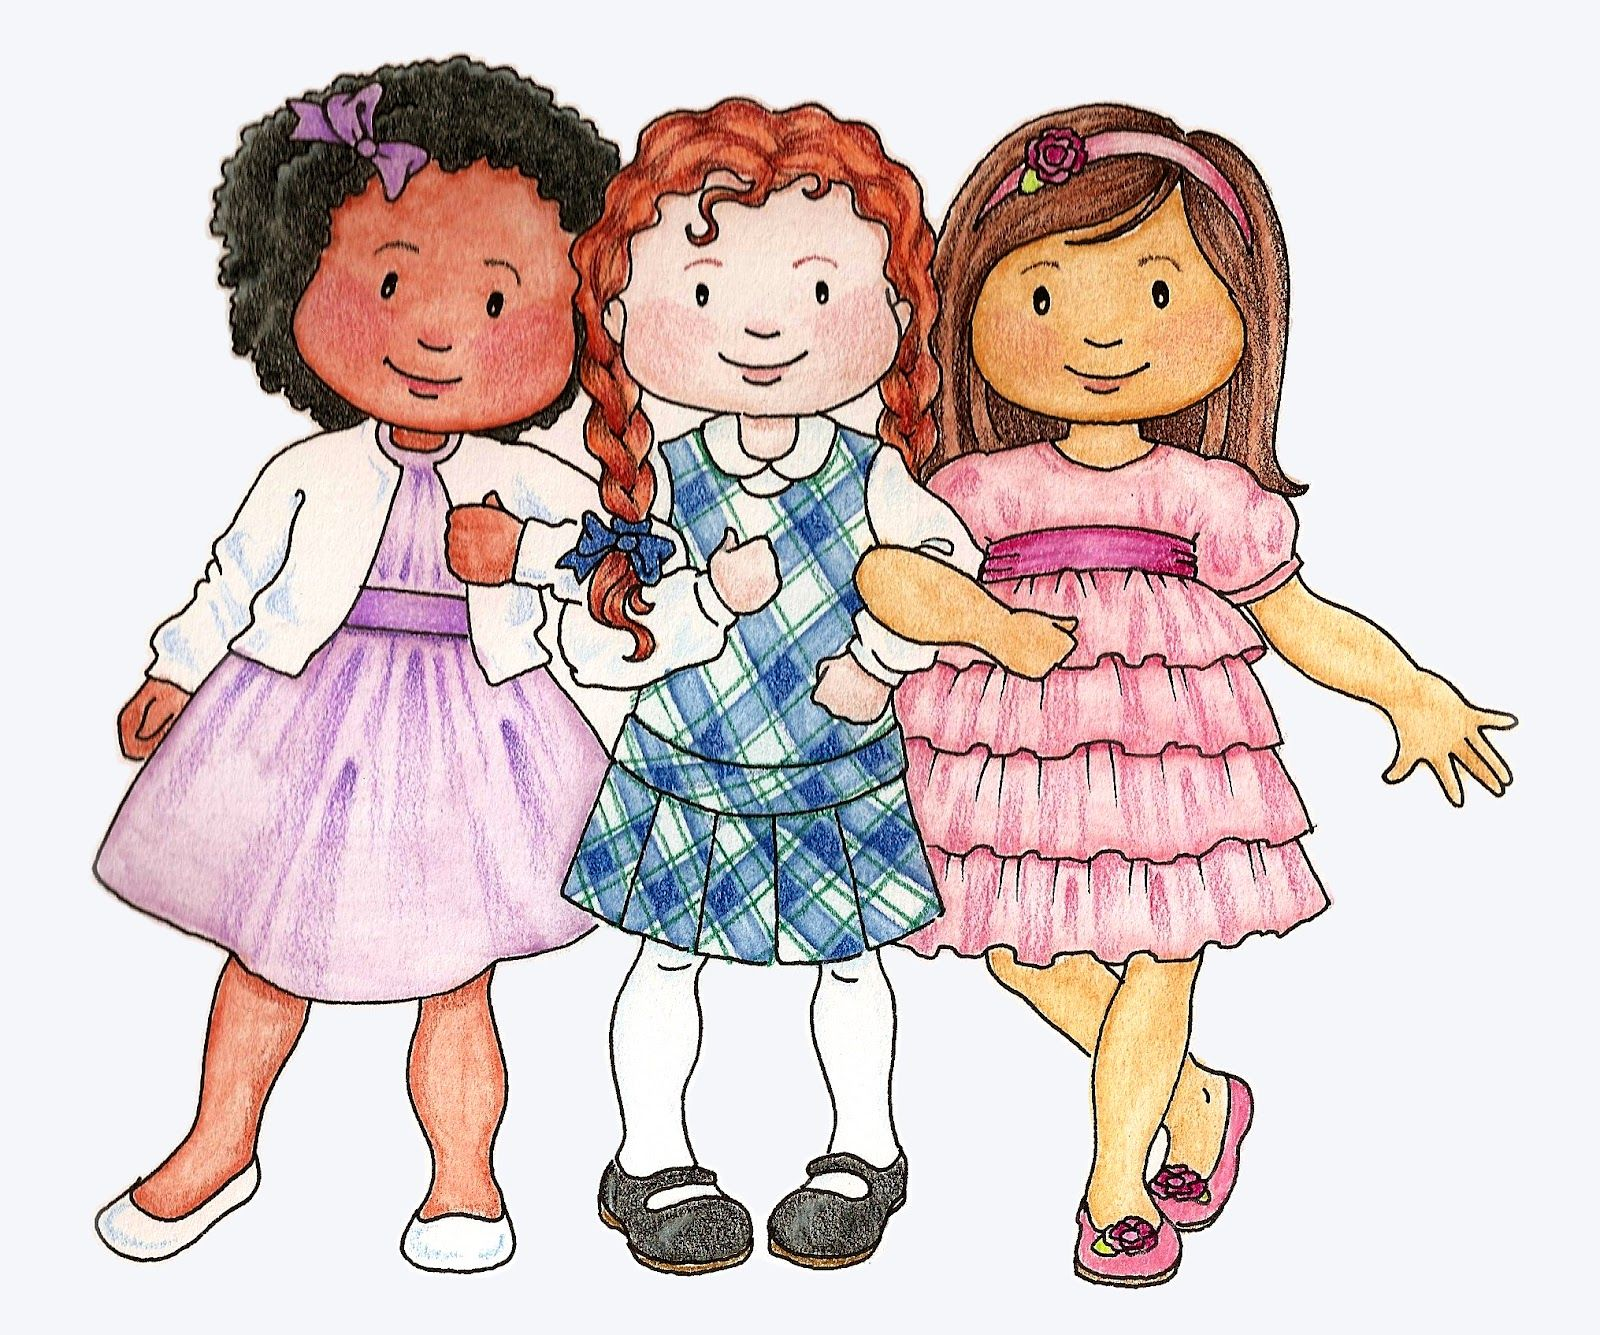 Susan fitch clipart opening song png royalty free library susan fitch design: Primary Kids Clip Art Free download ... png royalty free library